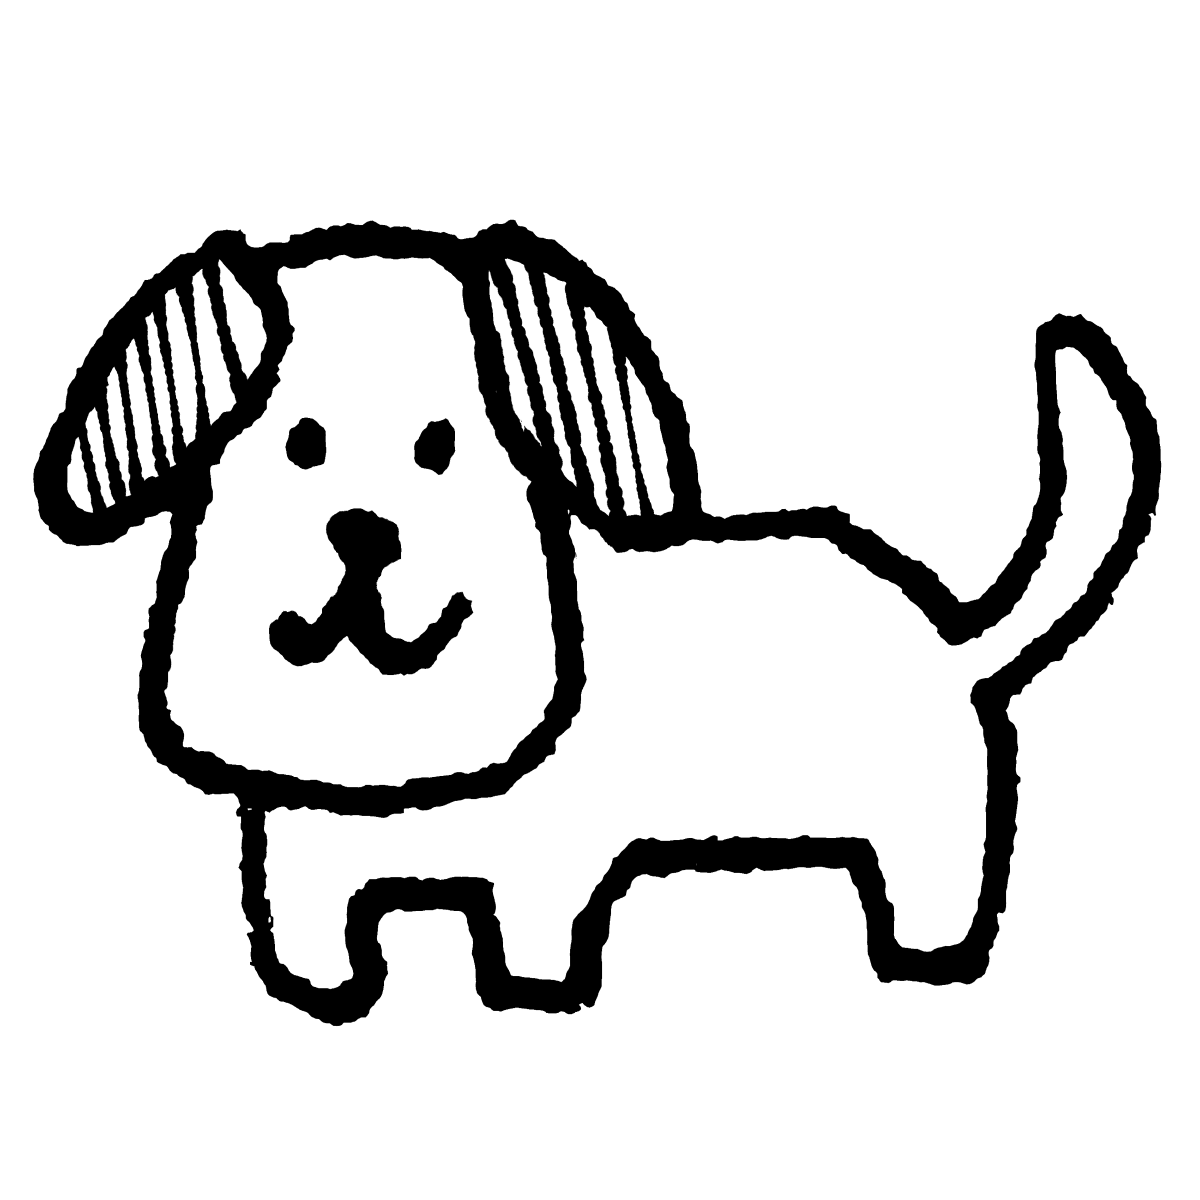 立つ犬1のイラスト / Standing Dog 1 Illustration